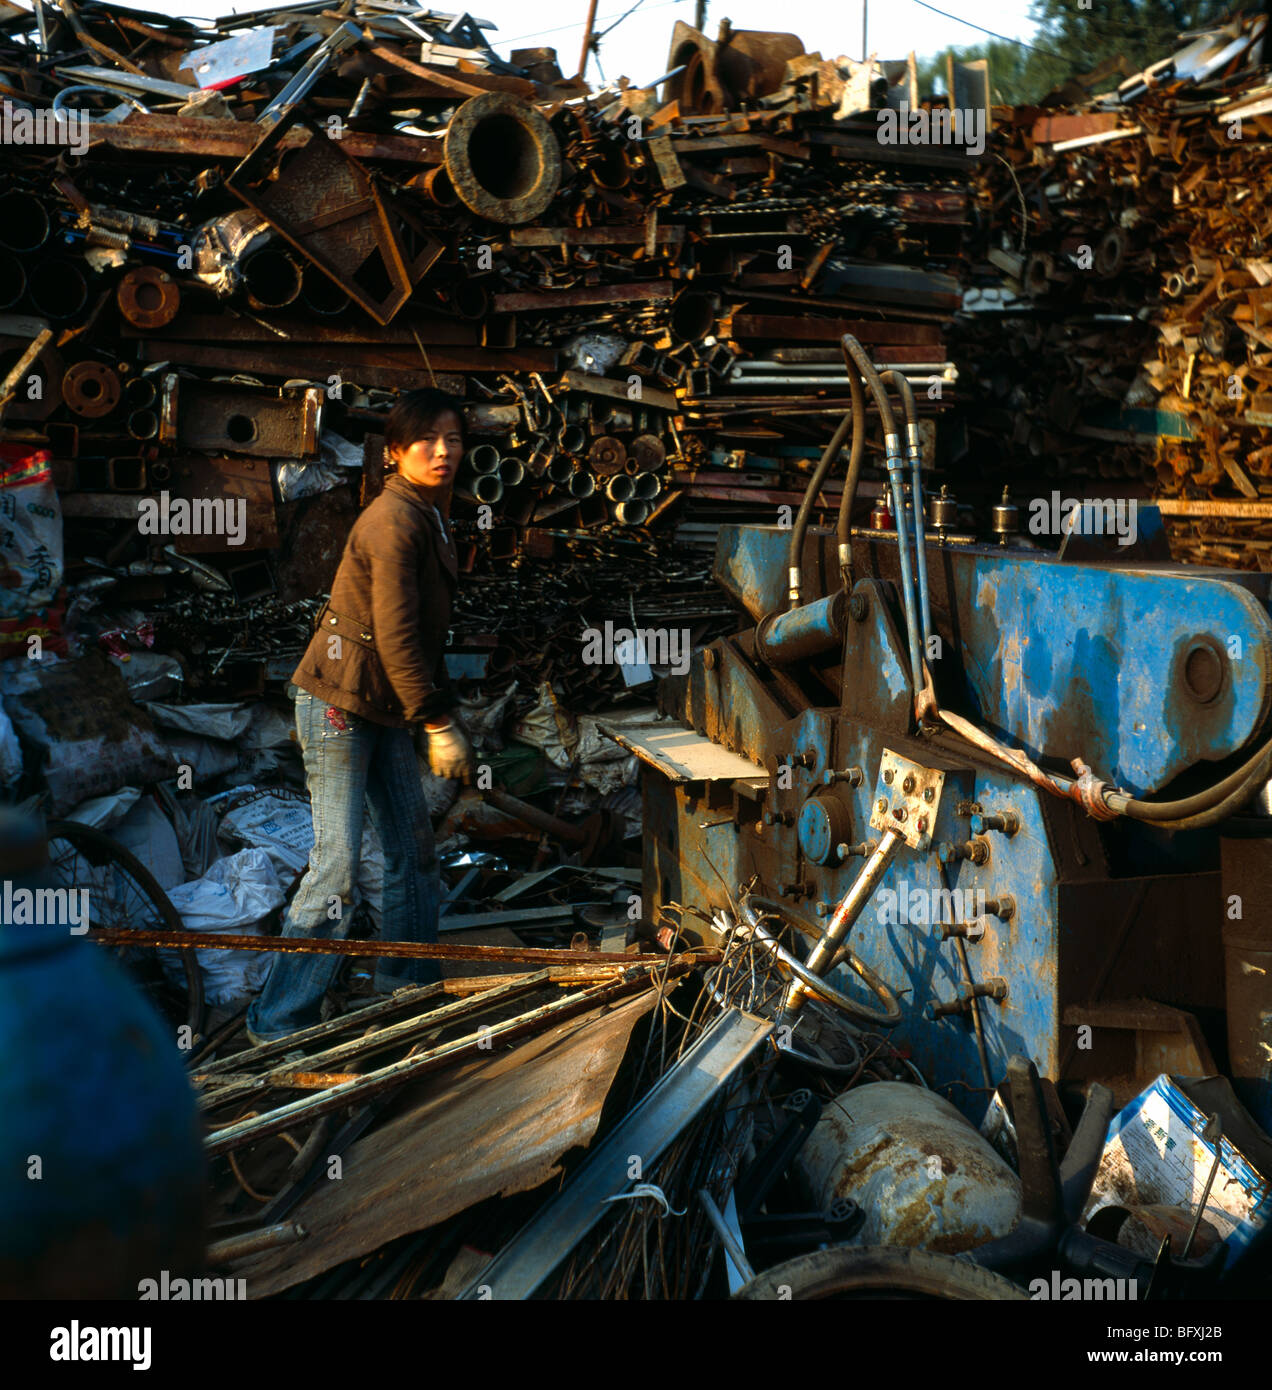 Chinese woman works at scrap metal yard in Beijing, China. 2009 - Stock Image